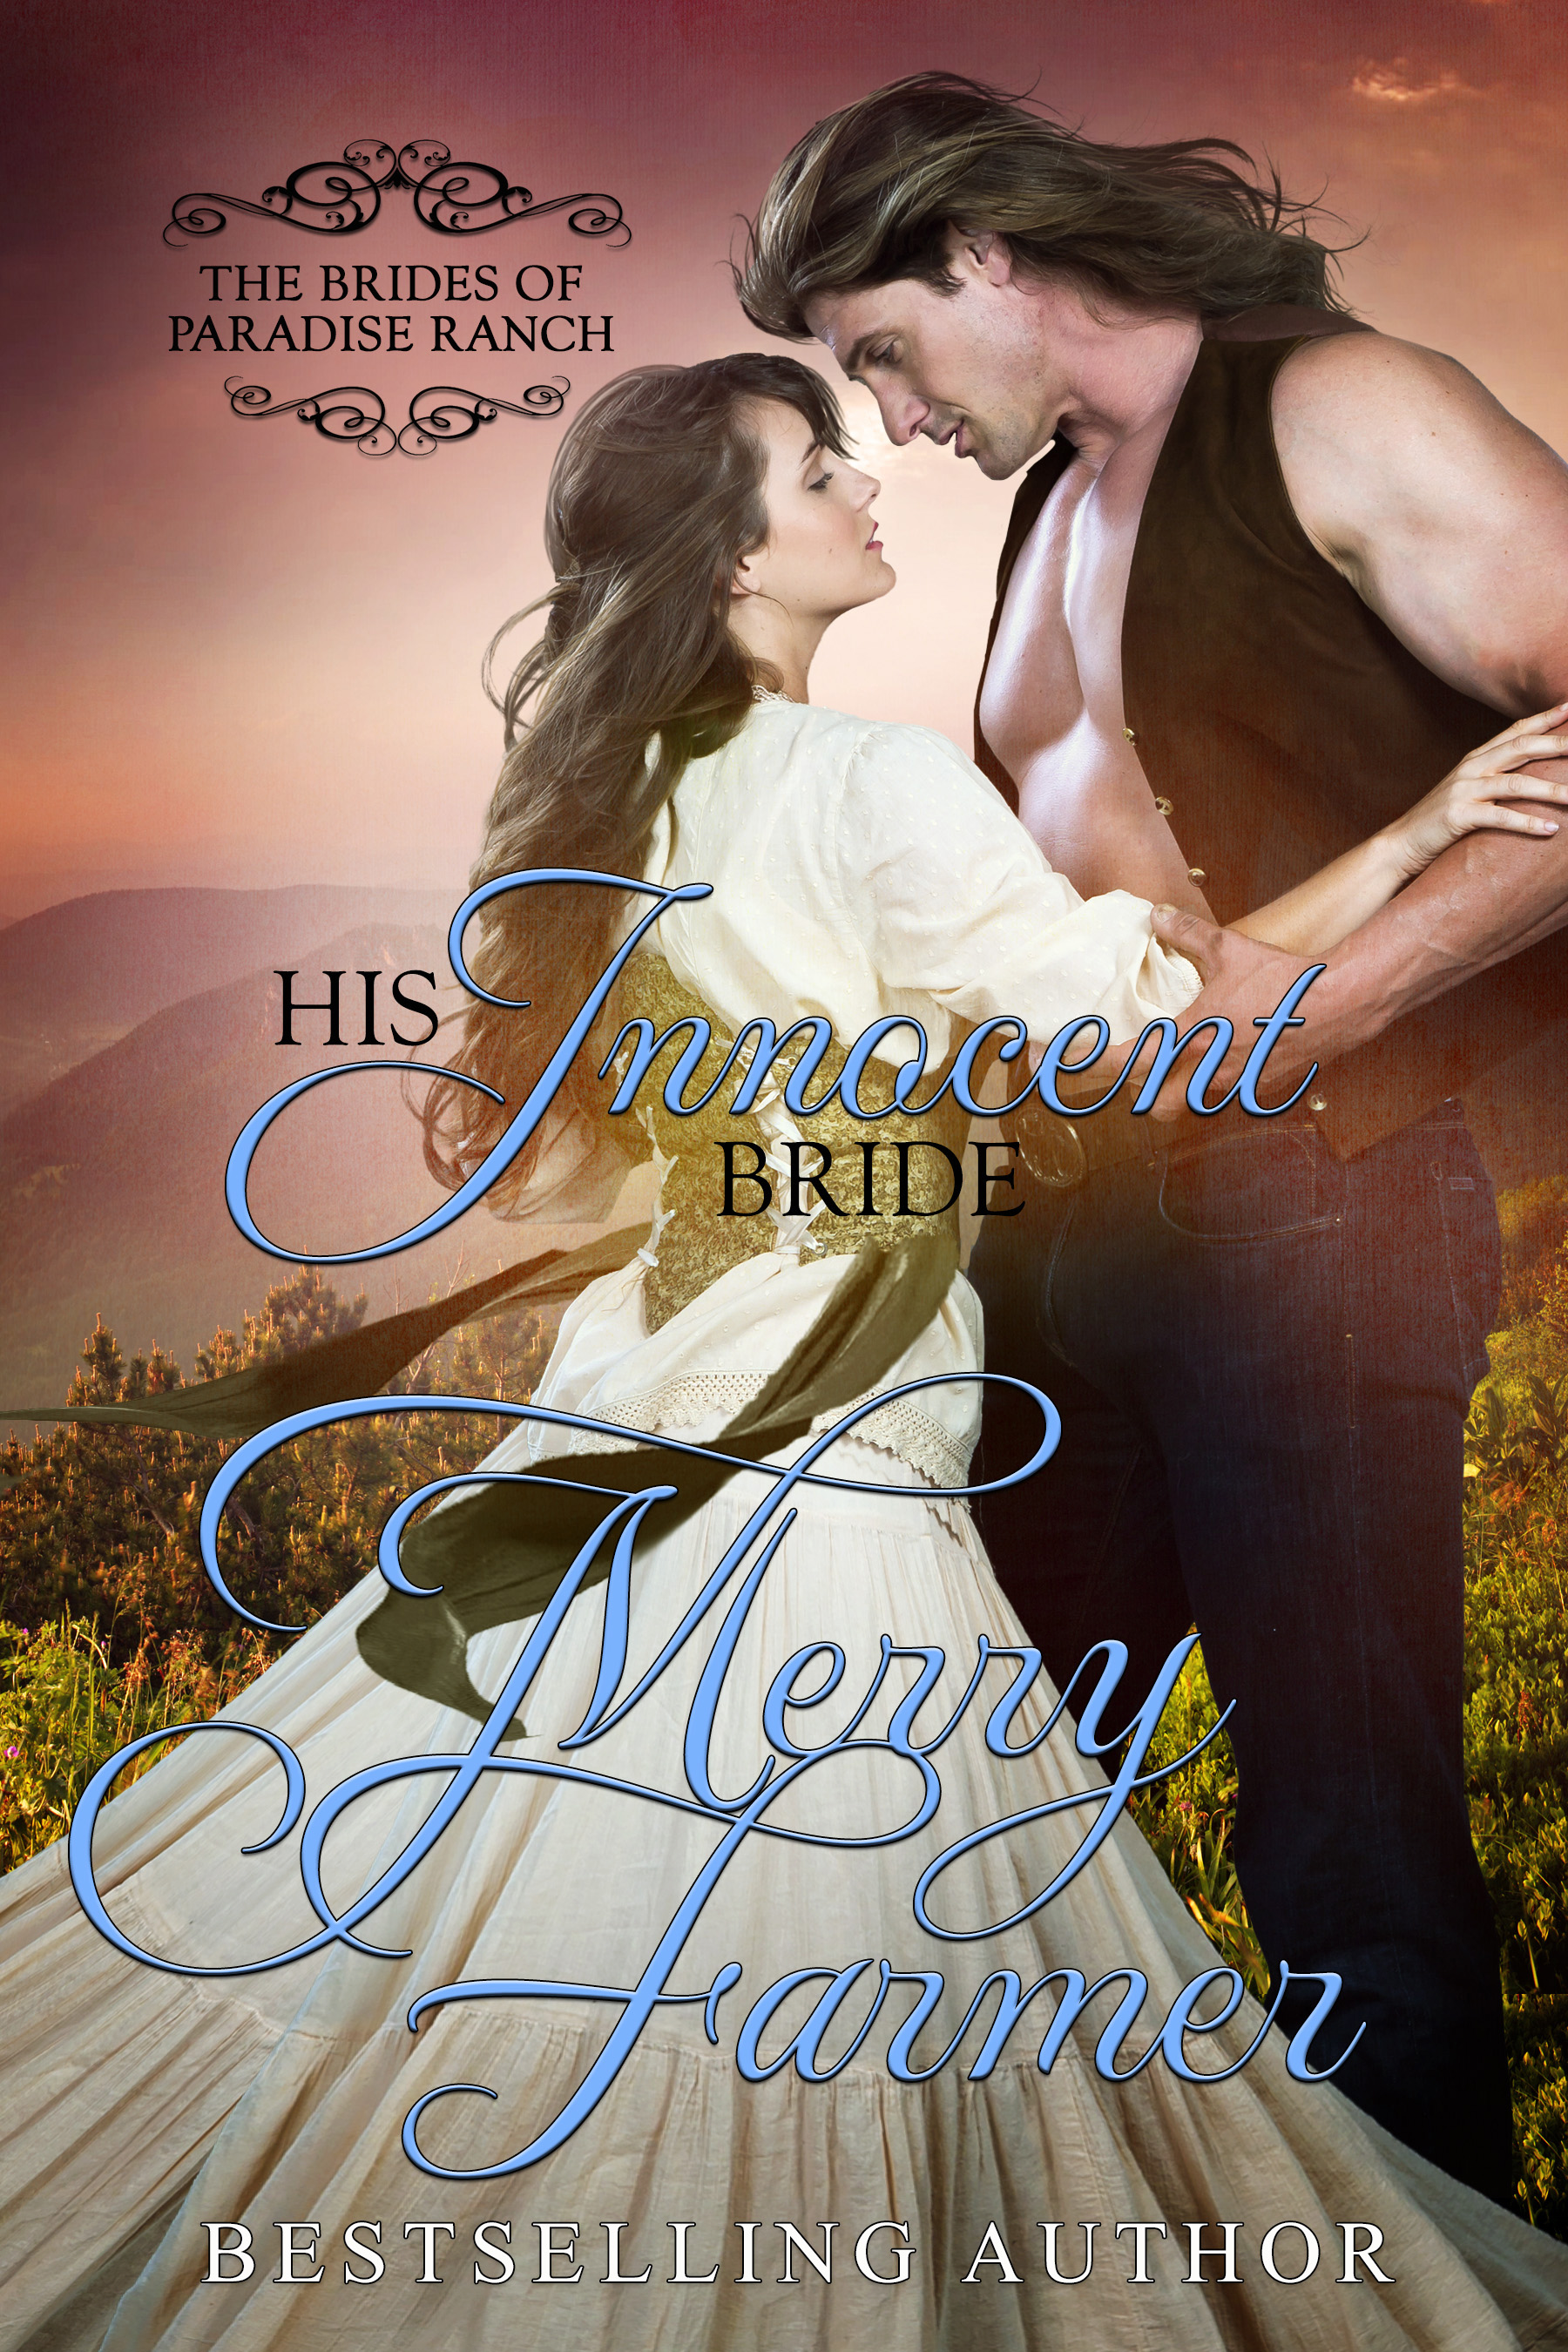 """His Innocent Bride (Book 11) - Everybody else was doing it, so why not him?Sam Standish has always prided himself on being a rough and rugged frontier saloonkeeper. Just because he likes to keep things neat and tidy, appreciates good home cooking, and thinks a grandfather clock would be a fine addition to any home does NOT mean he's the settling down type. But he sends away for a mail-order bride anyhow, expecting that once she arrives, his life will be as boring as plain toast.Julia Frost is a whirlwind in pink cotton who comes from a long line of people that have met early, gruesome, and unfortunate ends. But she's determined to make Sam happy…even if she has to drag him there kicking and screaming. Life in Haskell is everything Julia has ever longed for. She even finds a bosom friend in Bebe Bonneville.But chaos breaks loose when Julia and Bebe find a clue that indicates robber's loot is hidden in the saloon. And Sam's predictable world is turned on its head when Hubert Strong comes to him for help in wooing and winning Bebe. Will one set of sweethearts be able to help the others start a new life together (possibly with loot!) or will Rex Bonneville put an end to more than one romance?PLEASE BE ADVISED: Steam Level – HotIf you would like to read this book without any """"scenes"""", check out Julia: The Innocent Bride."""